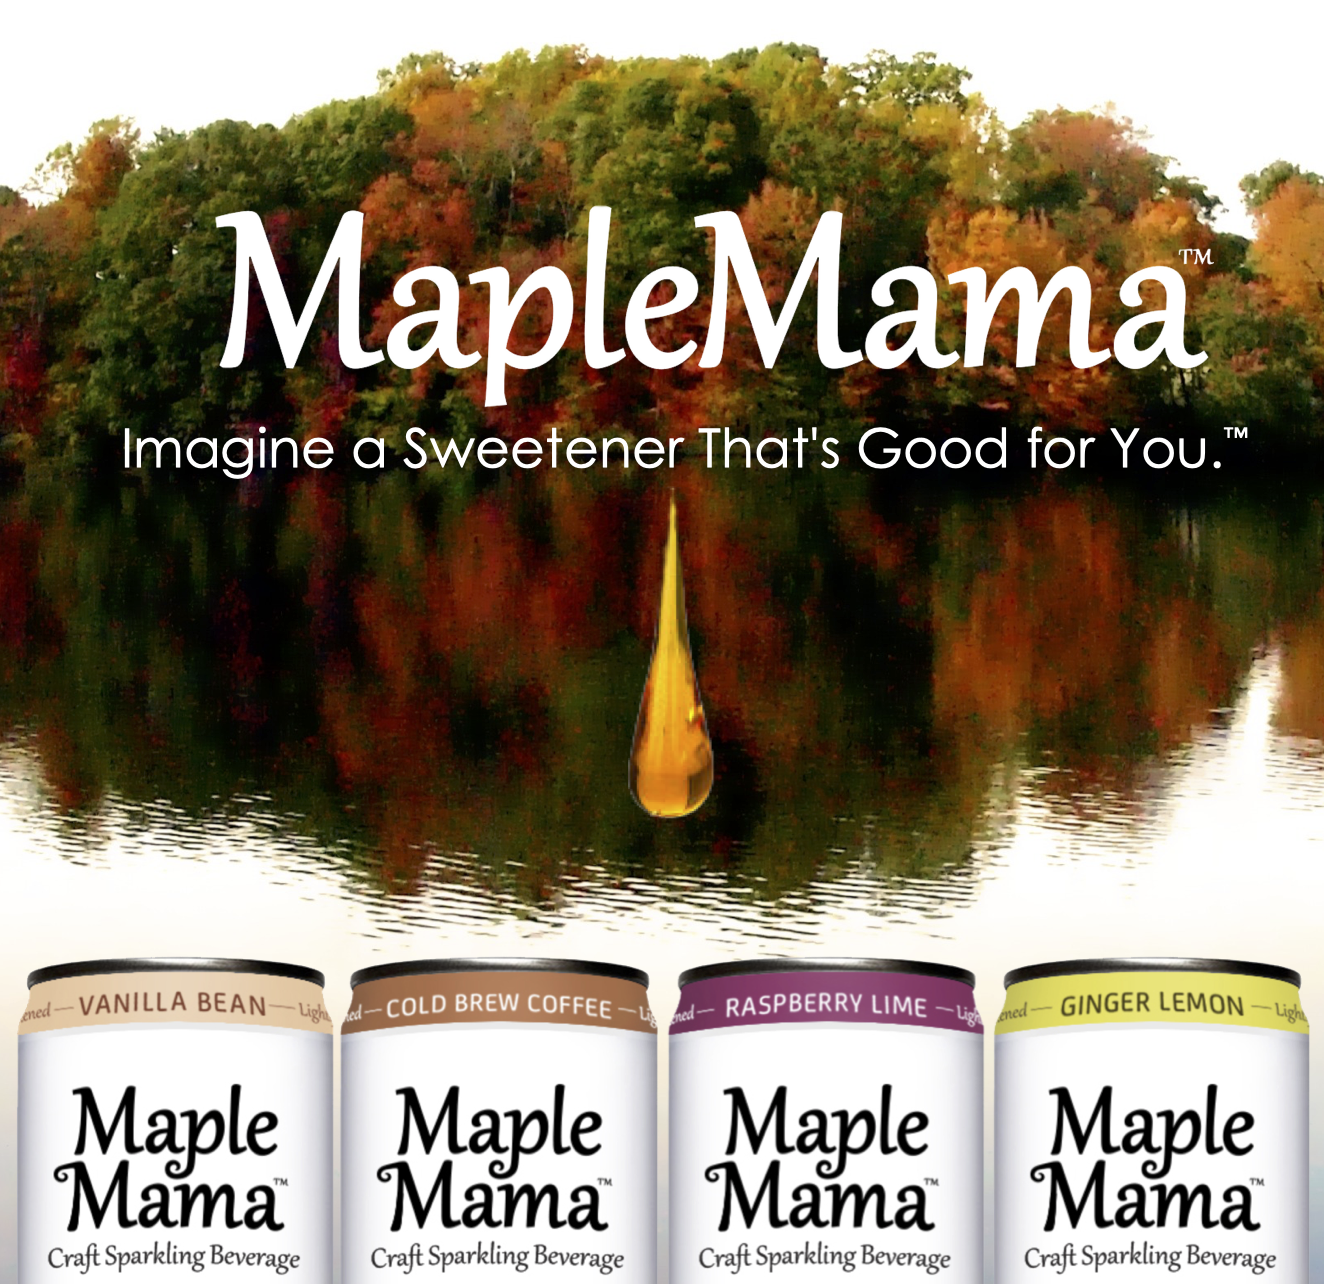 Maple is one of nature's superfoods and it's the only